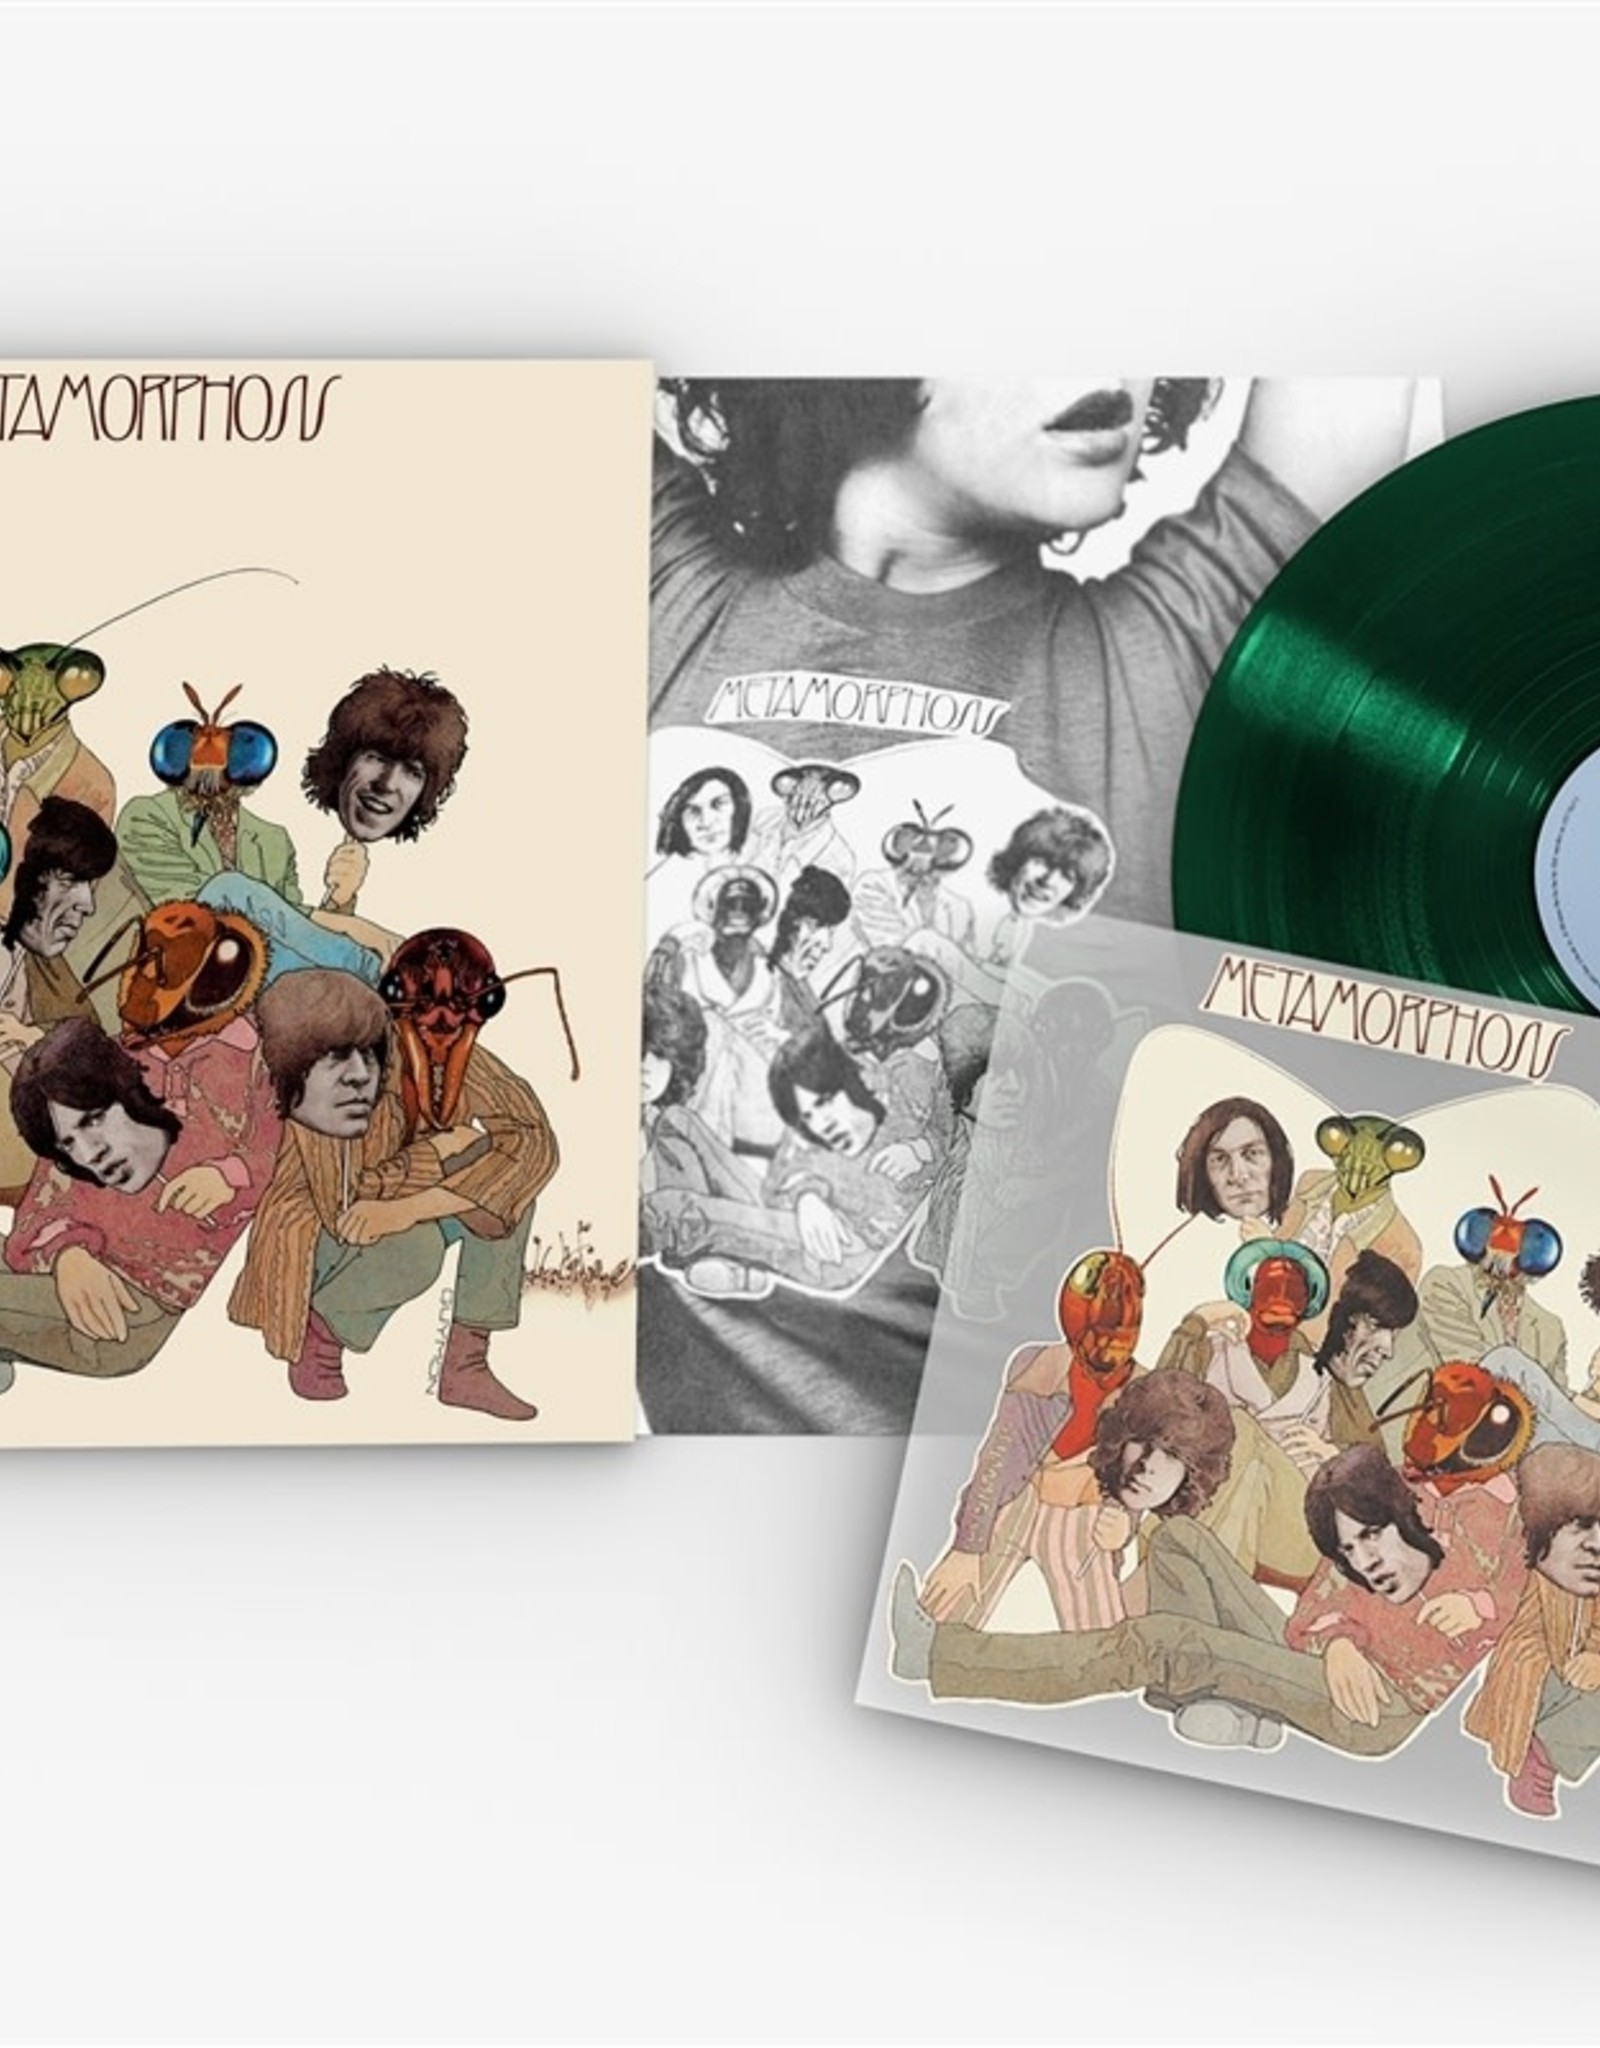 Rolling Stones - Metamorphosis Uk (Special Edition) (Hunter Green Vinyl/Full Color Exclusive Iron On Cover Art)  (RSD 2020)